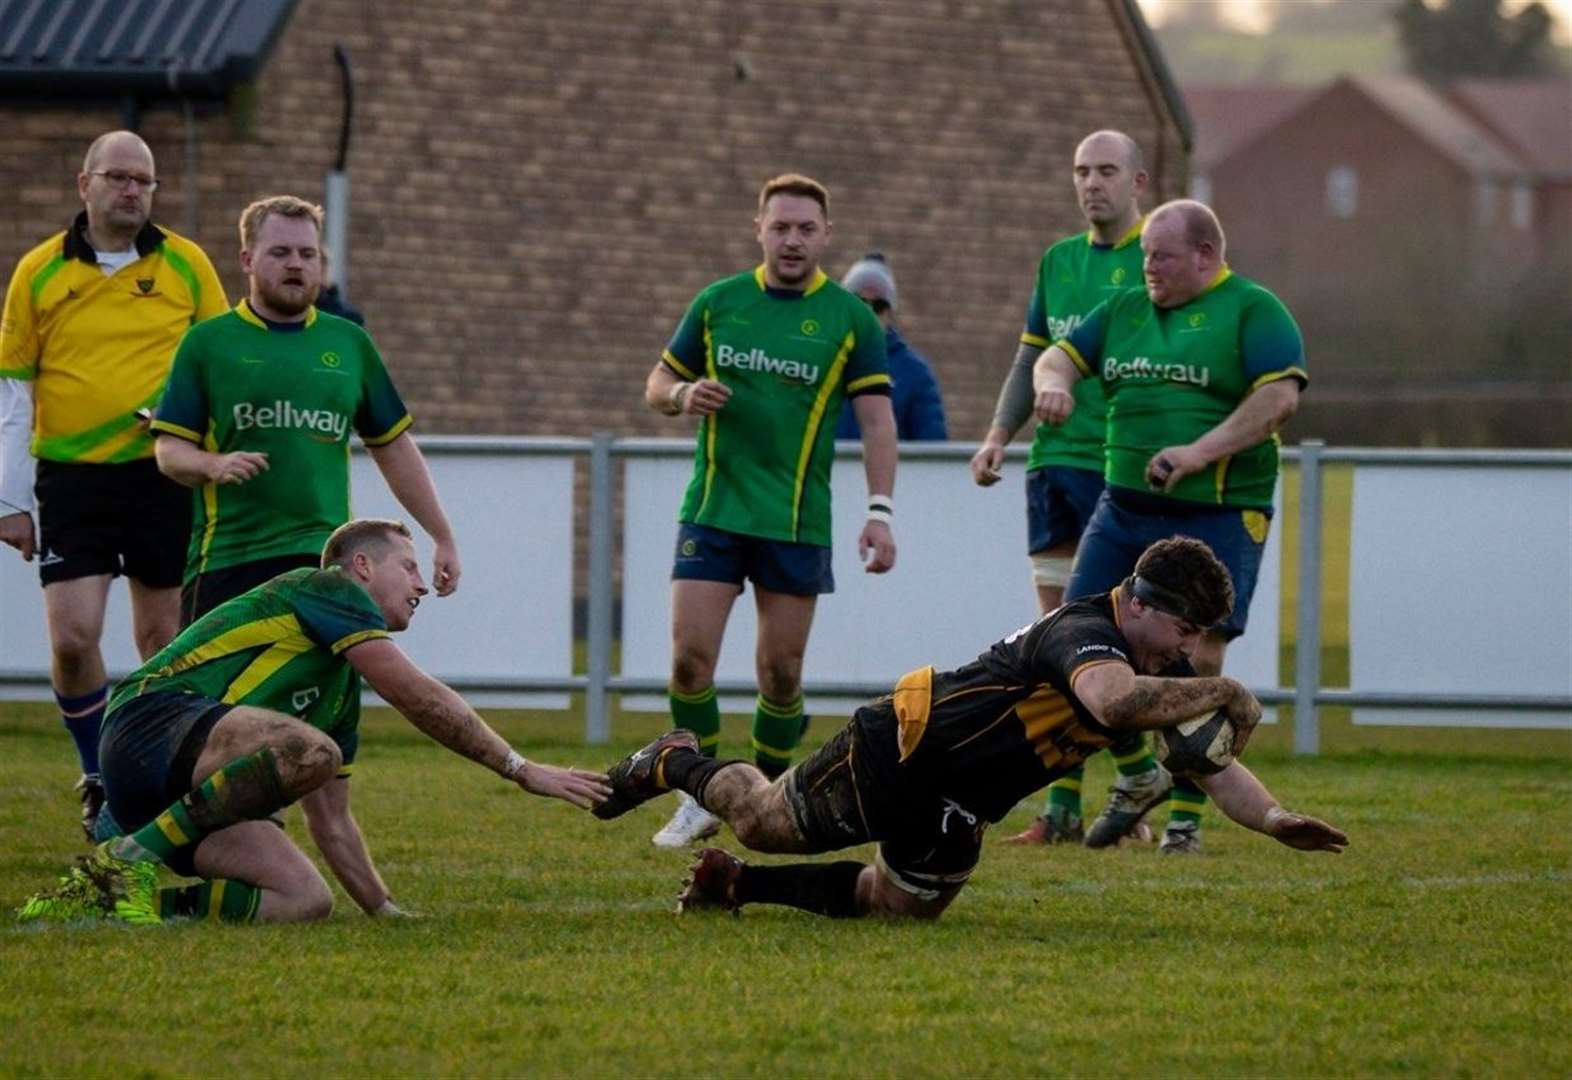 Oakham return to winning ways as Houghton caps comeback with a try